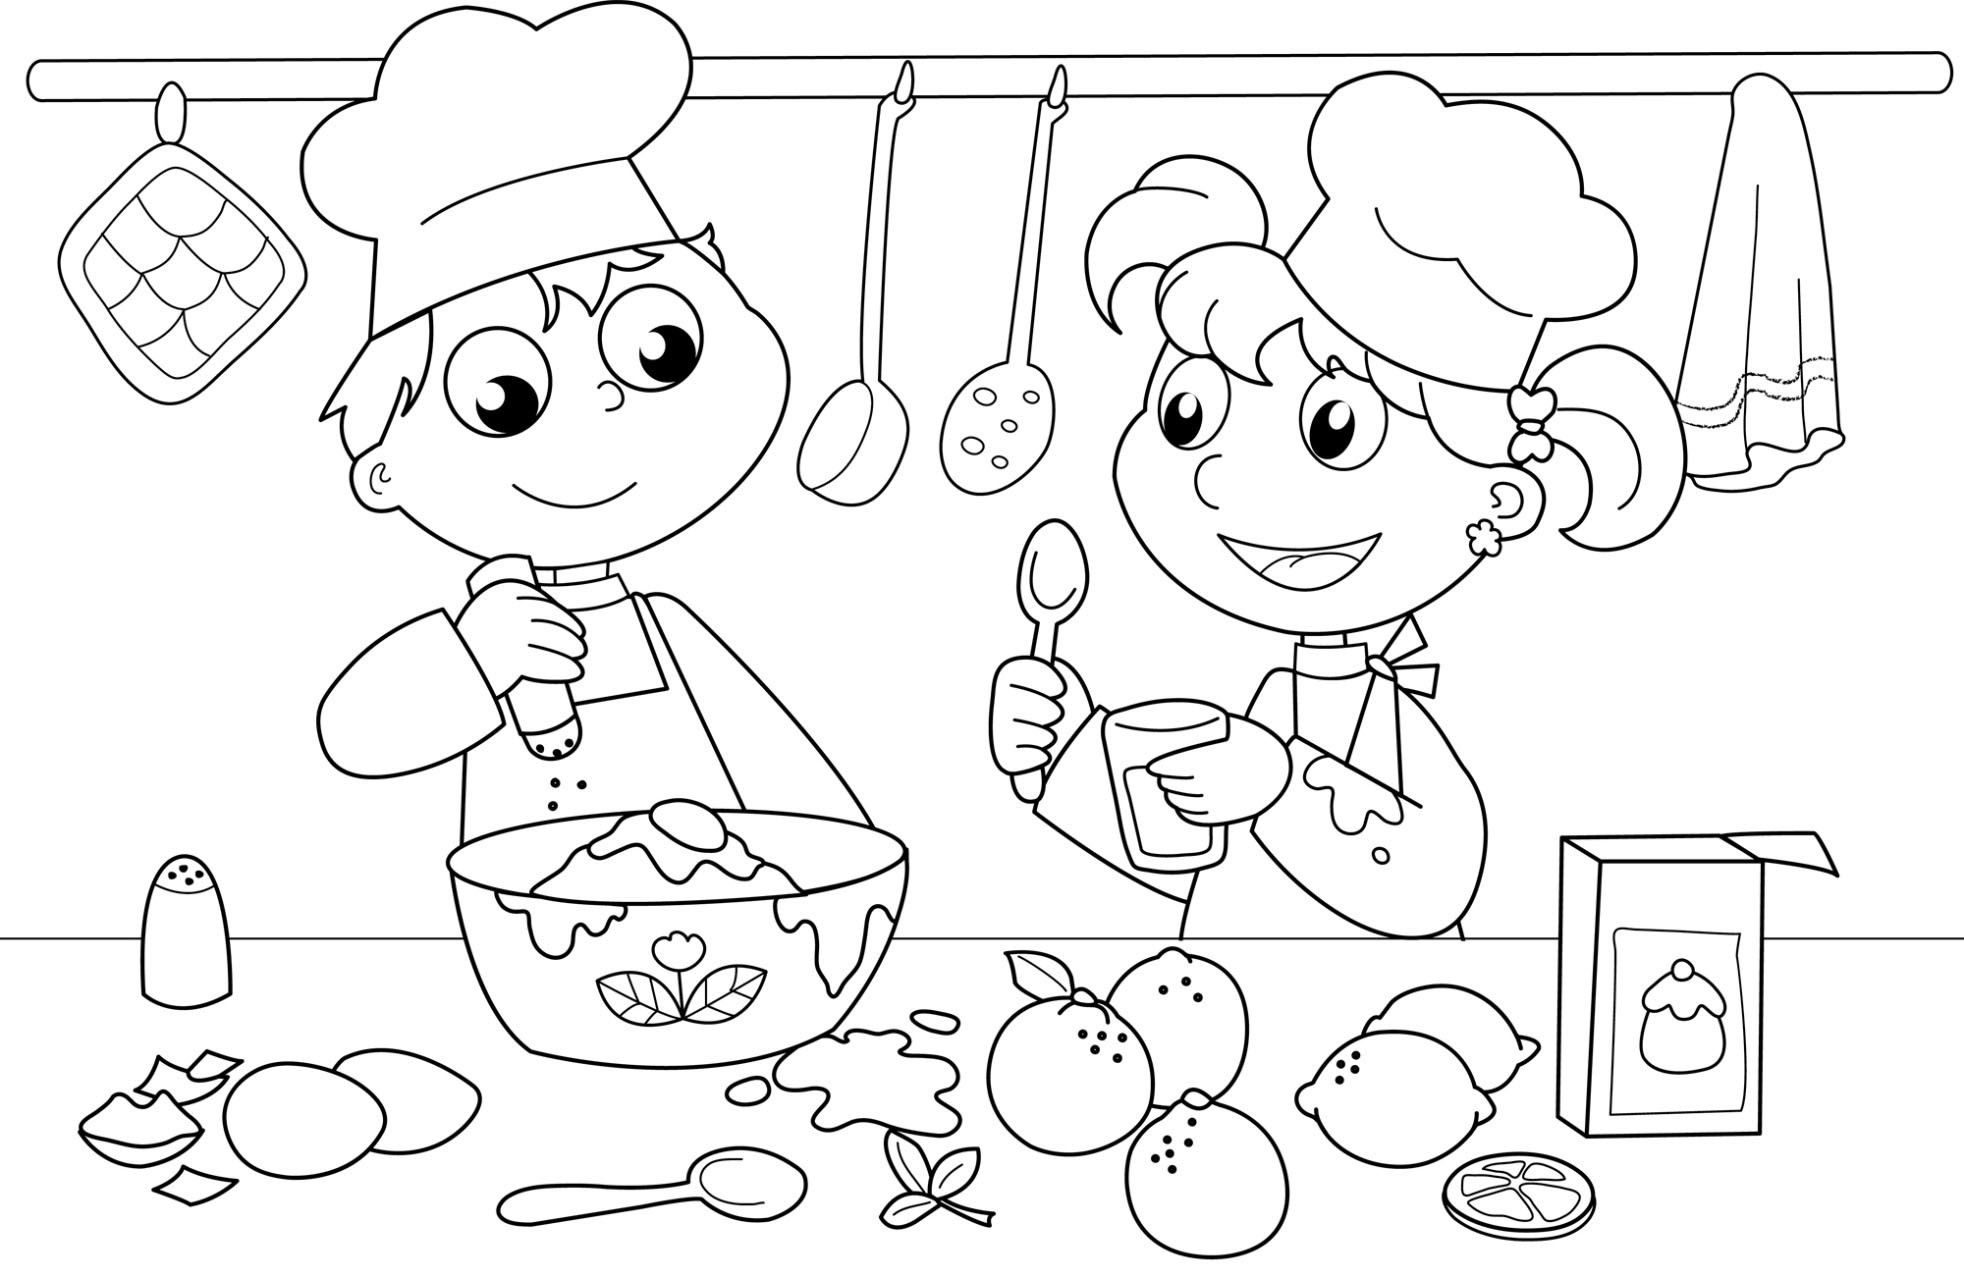 1964x1276 Kids In The Kitchen Coloring Pages For Kids Inspirational Kitchen